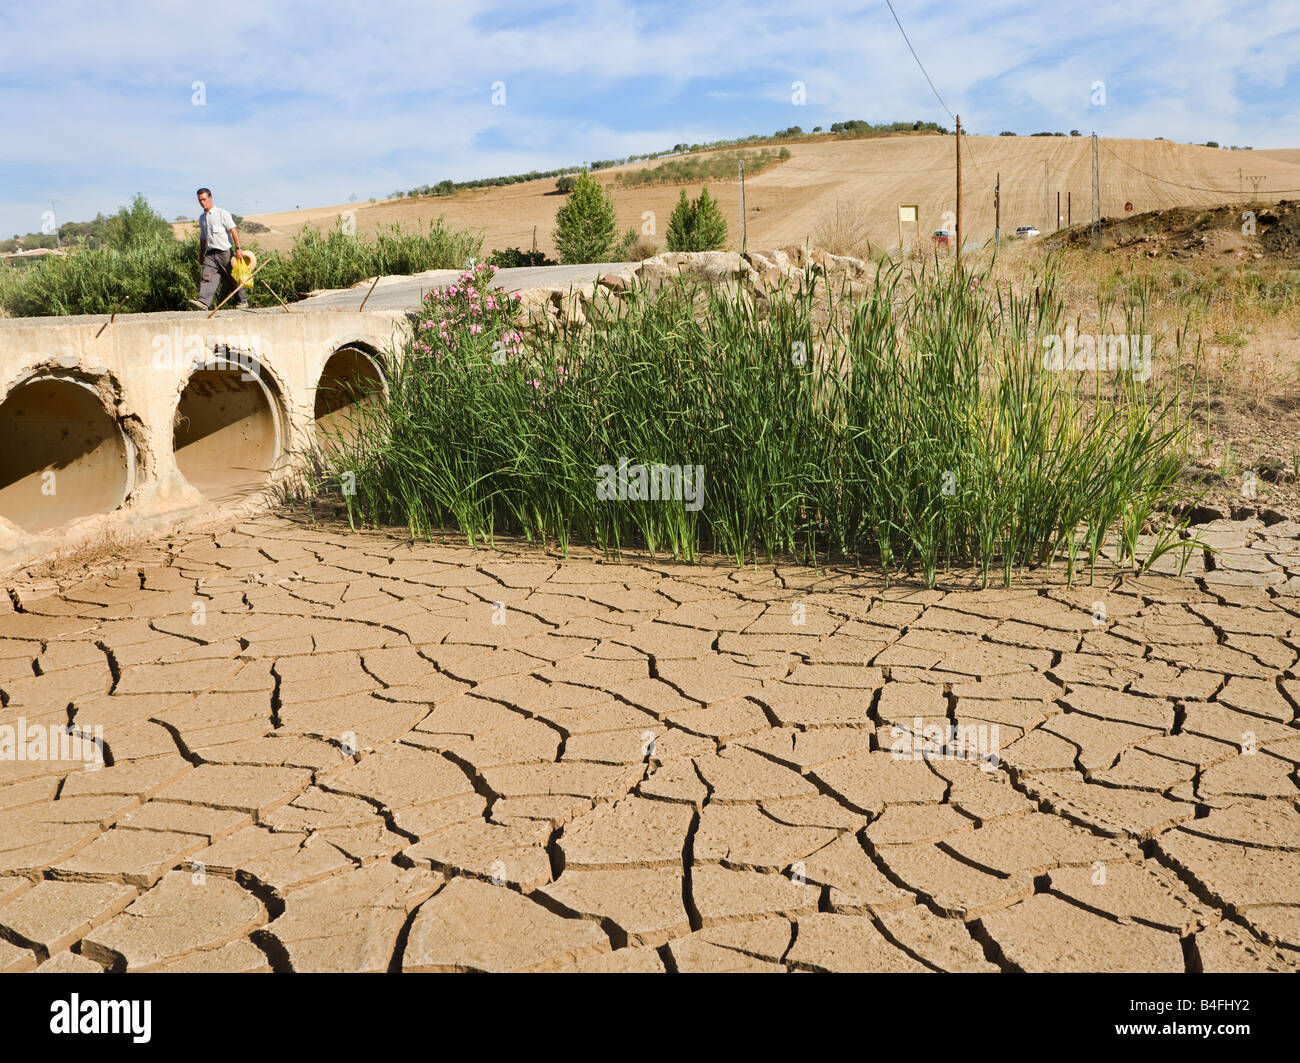 Dried river bed during drought La Alcaide near Casabermeja Spain - Stock Image